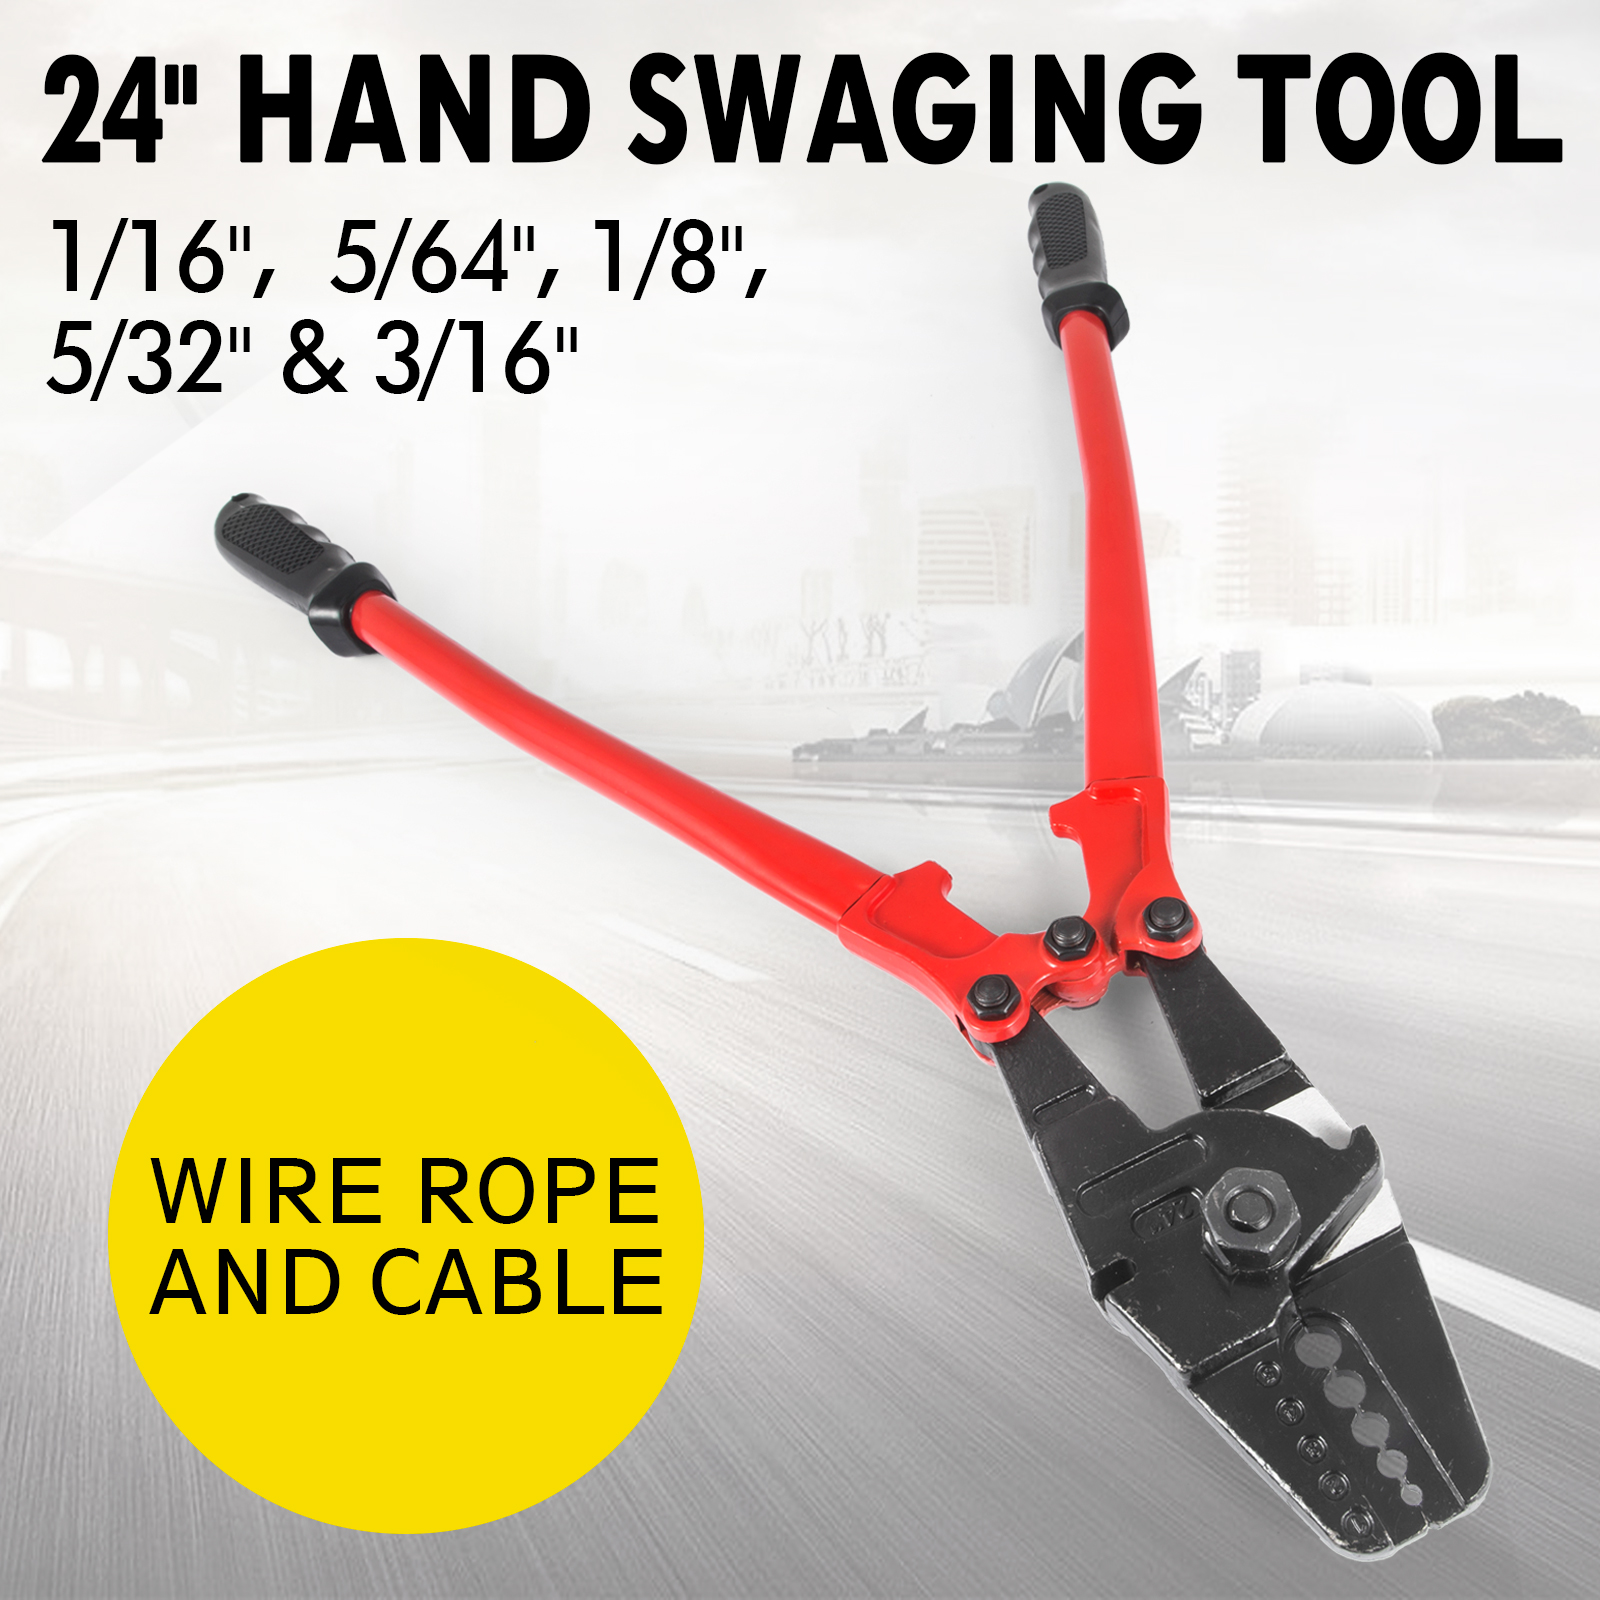 Tool Wire Swaging Rope 1 32